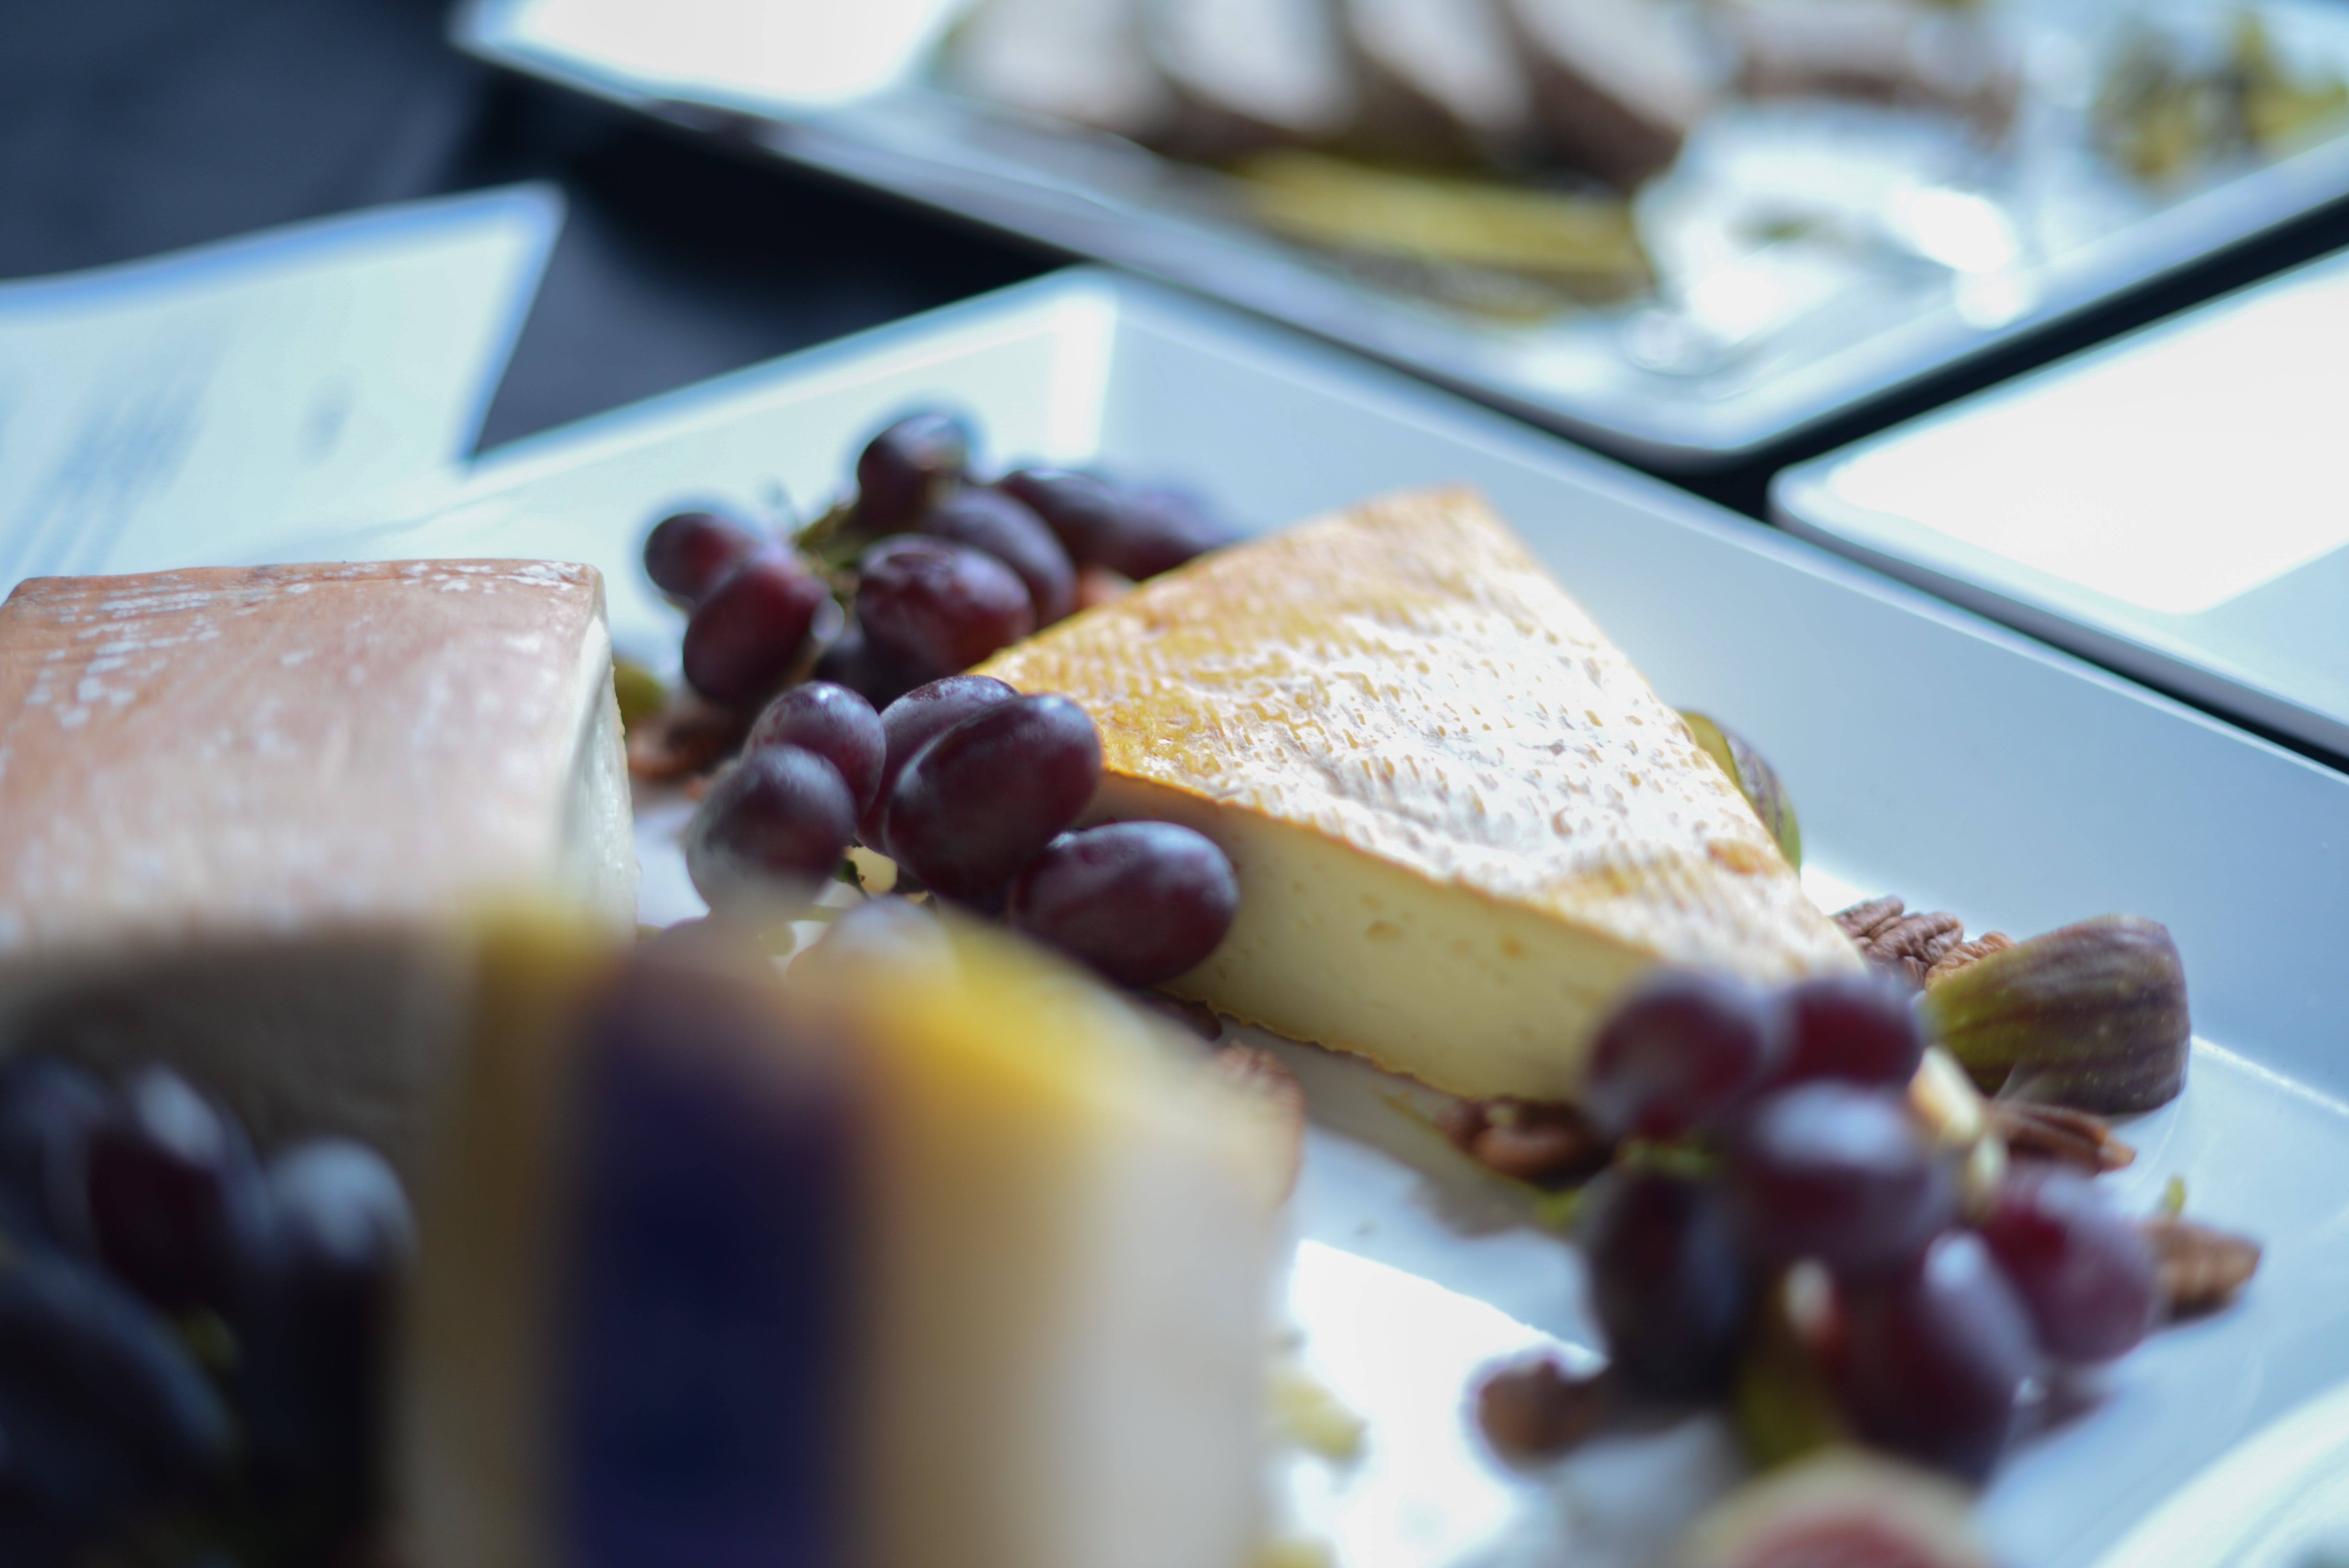 Shallow Focus Photography of Grapes and Sliced Cake